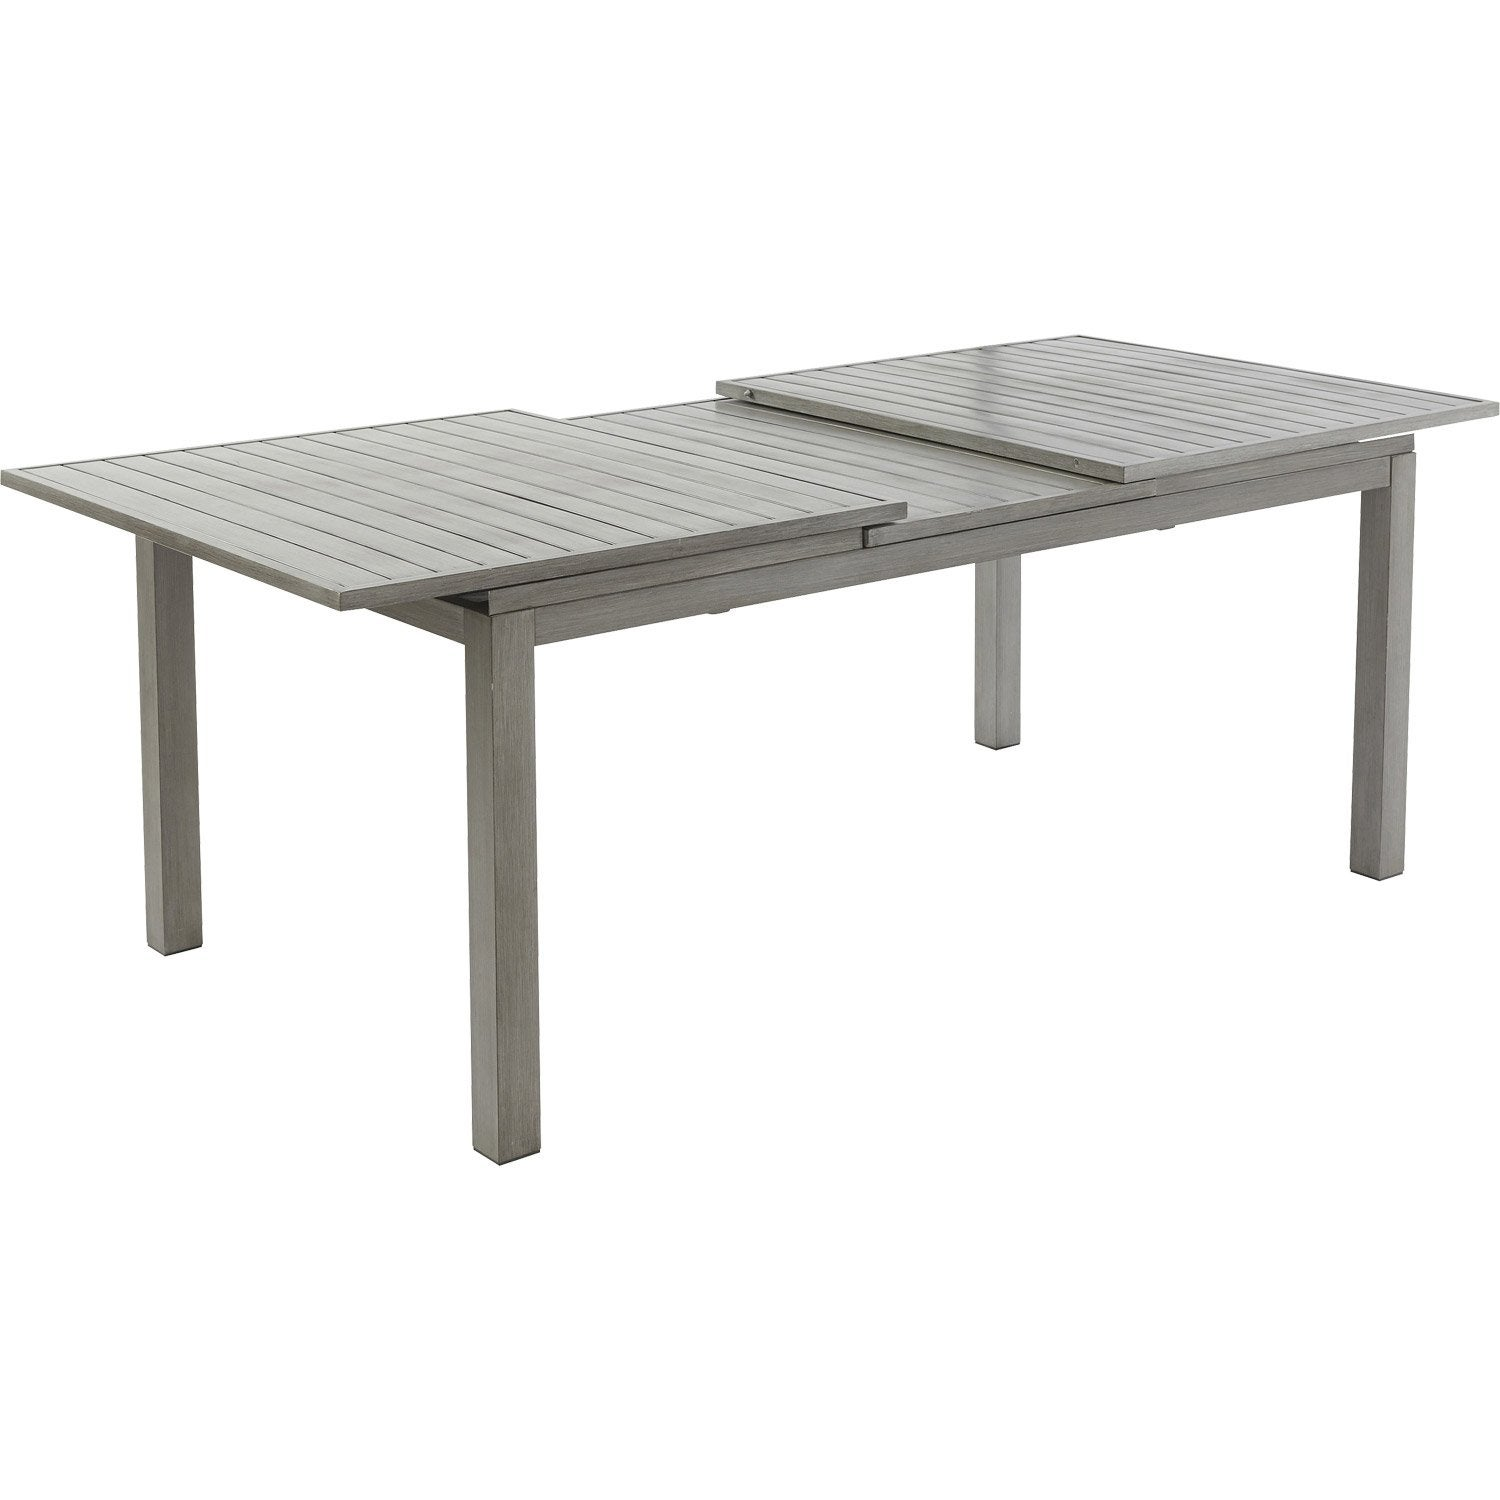 Table de jardin avec extension rectangulaire aluwood naterial leroy merlin - Leroy merlin table jardin ...